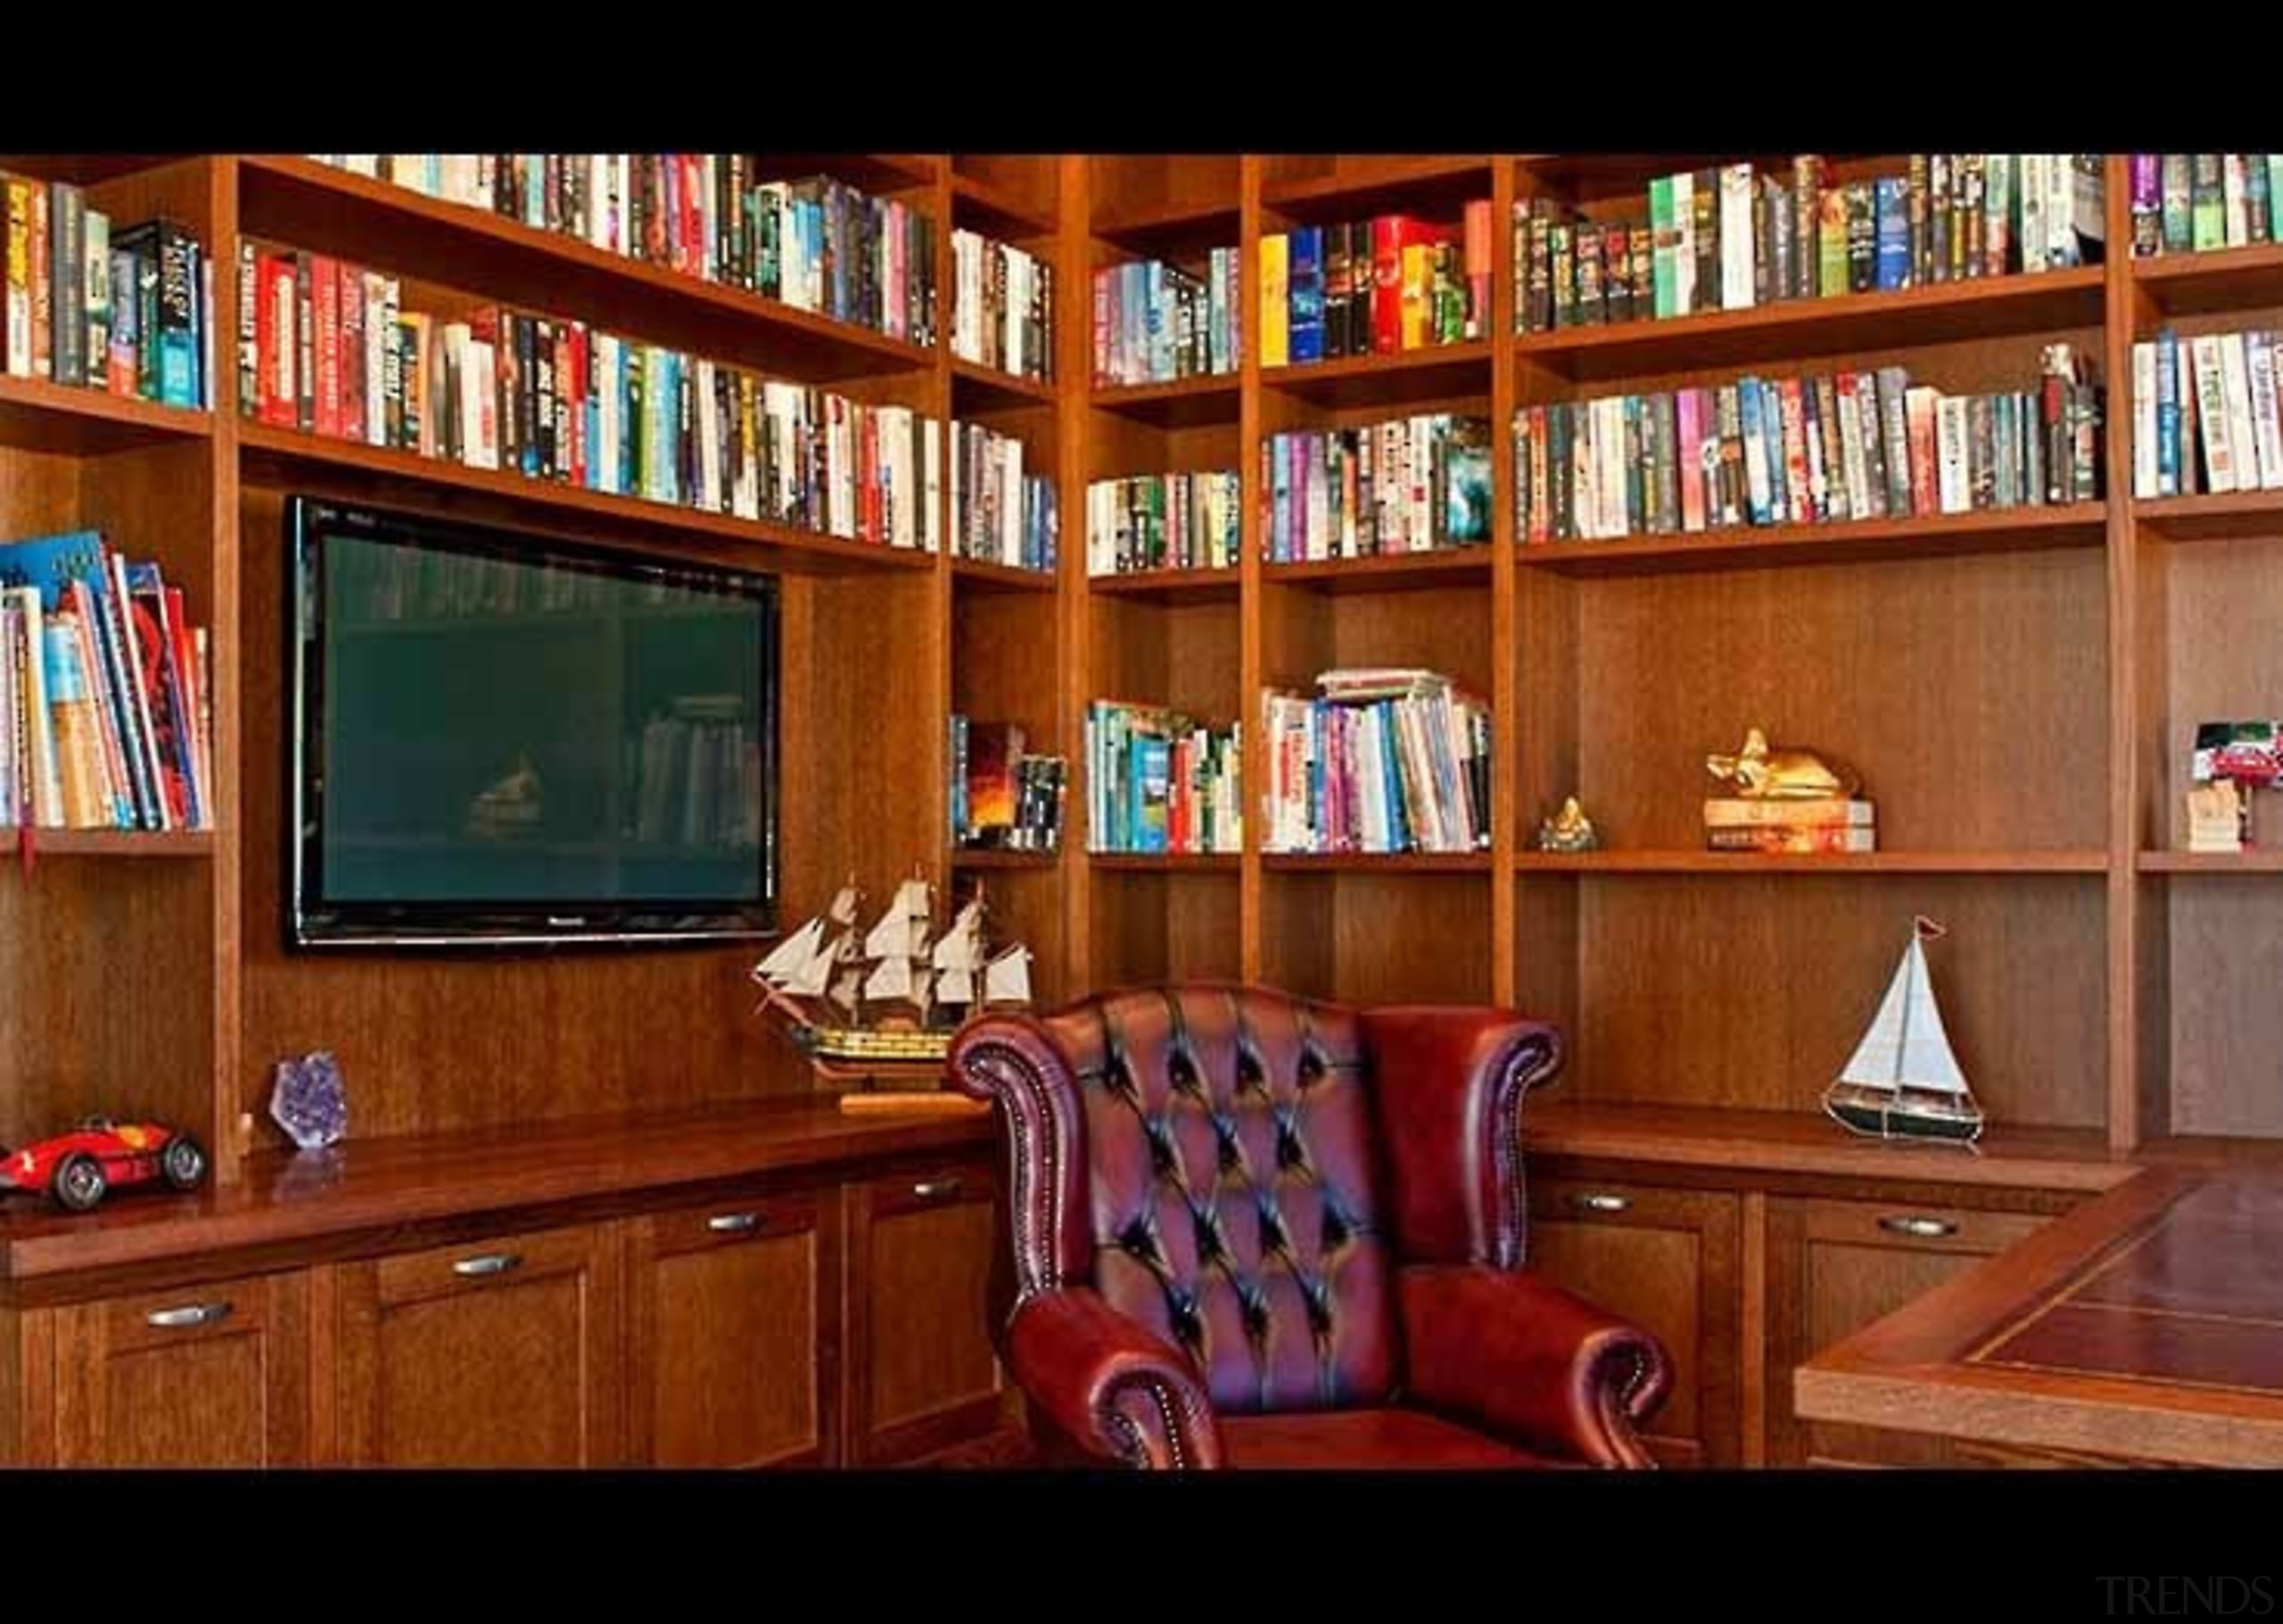 Classic Feel Library - bookcase   furniture   bookcase, furniture, interior design, library, public library, shelving, brown